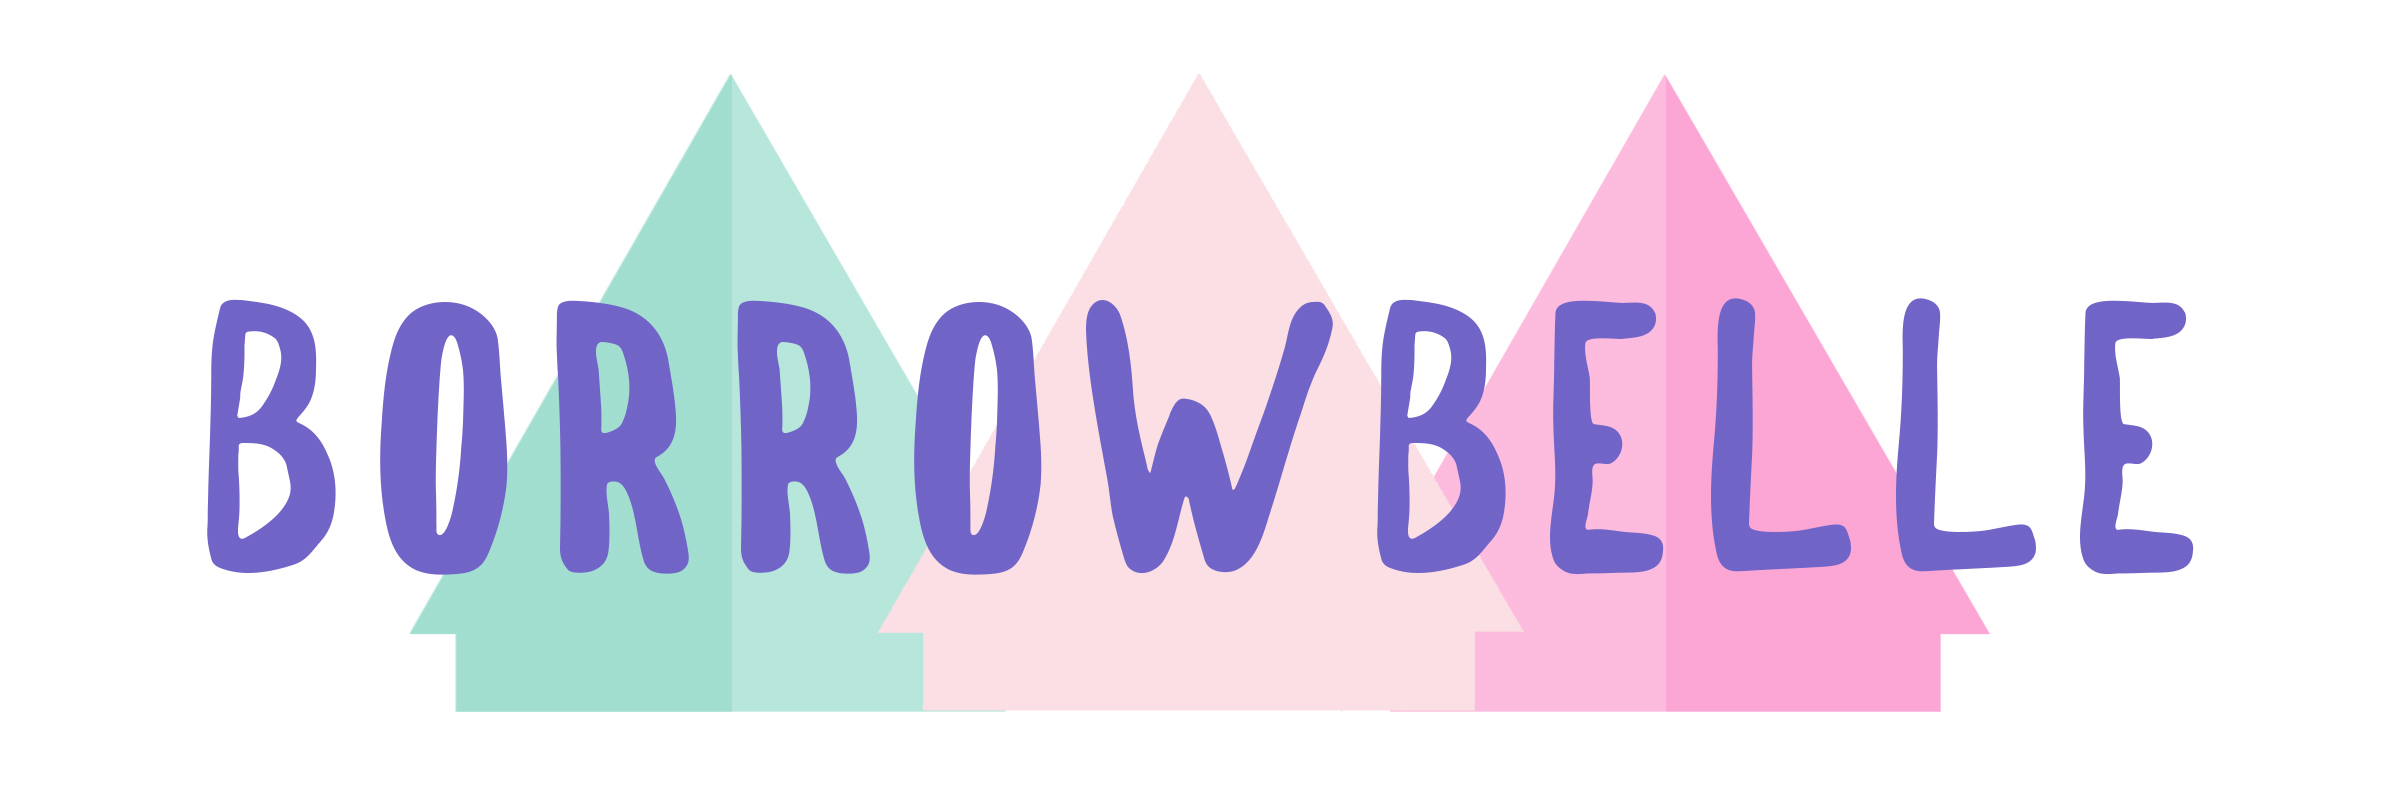 Borrowbelle